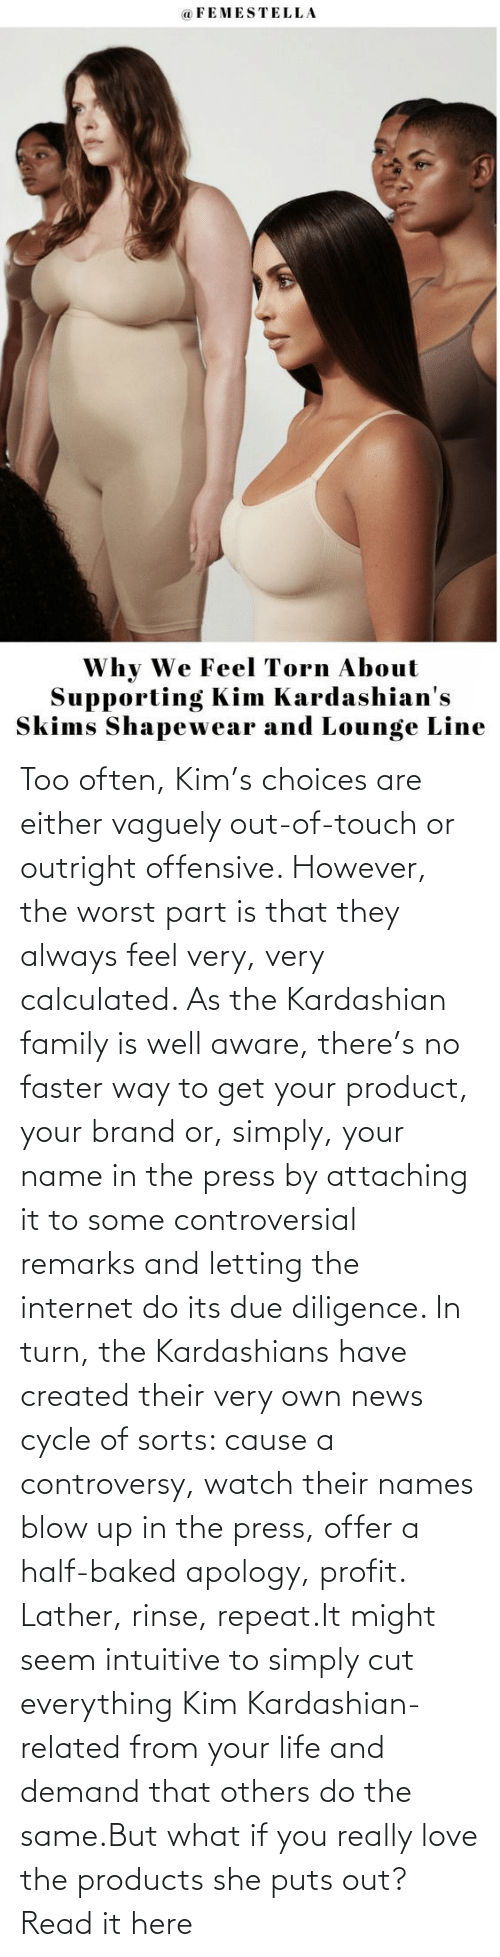 faster: Too often, Kim's choices are either vaguely out-of-touch or outright offensive. However, the worst part is that they always feel very, very calculated. As the Kardashian family is well aware, there's no faster way to get your product, your brand or, simply, your name in the press by attaching it to some controversial remarks and letting the internet do its due diligence. In turn, the Kardashians have created their very own news cycle of sorts: cause a controversy, watch their names blow up in the press, offer a half-baked apology, profit. Lather, rinse, repeat.It might seem intuitive to simply cut everything Kim Kardashian-related from your life and demand that others do the same.But what if you really love the products she puts out?Read it here